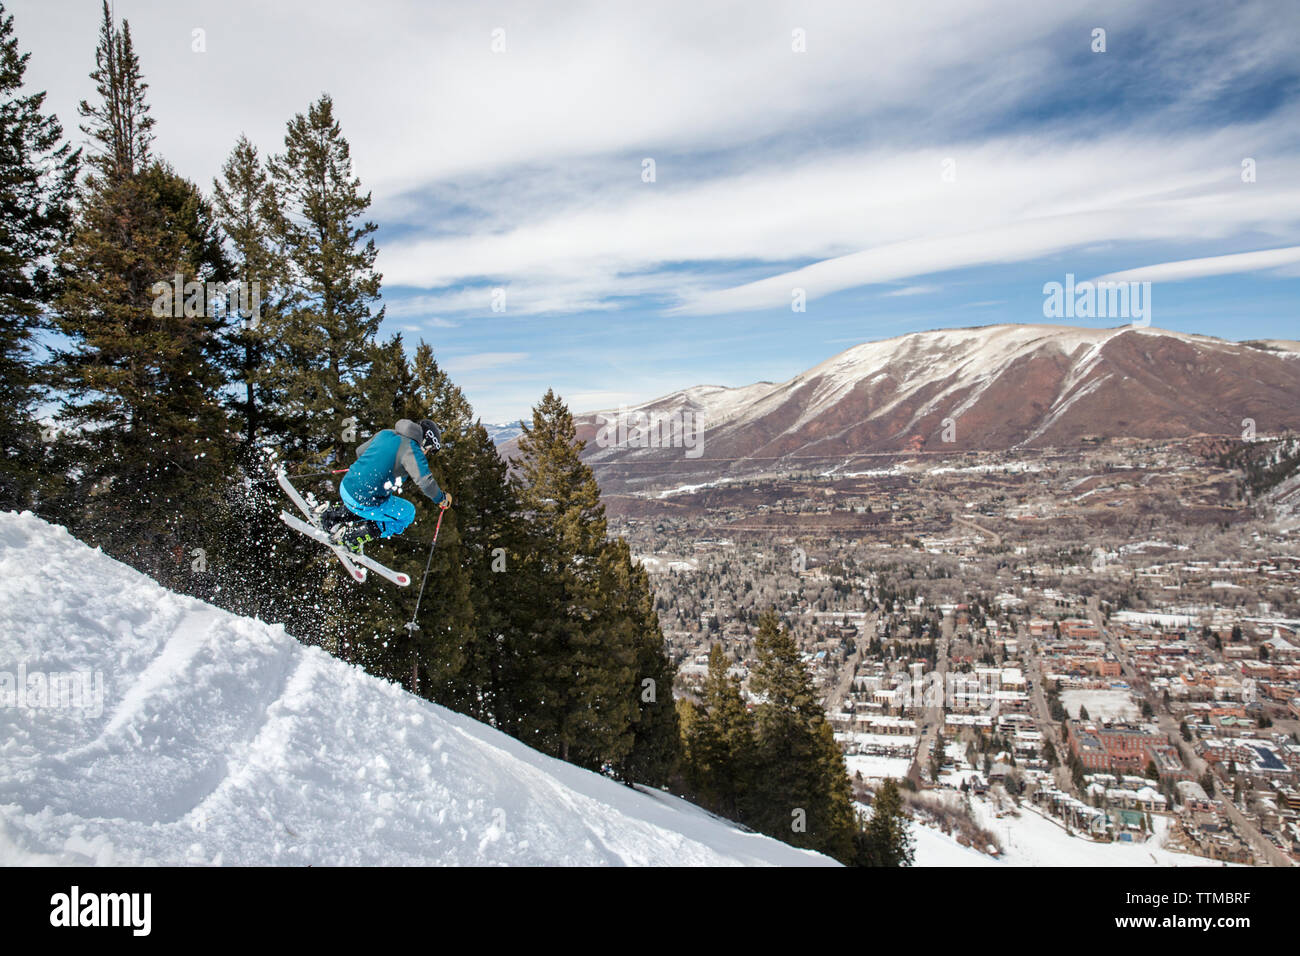 USA, Colorado, Aspen, skier getting air on a trail called Corkscrew with the town of Aspen in the distance, Aspen Ski Resort, Ajax mountain - Stock Image